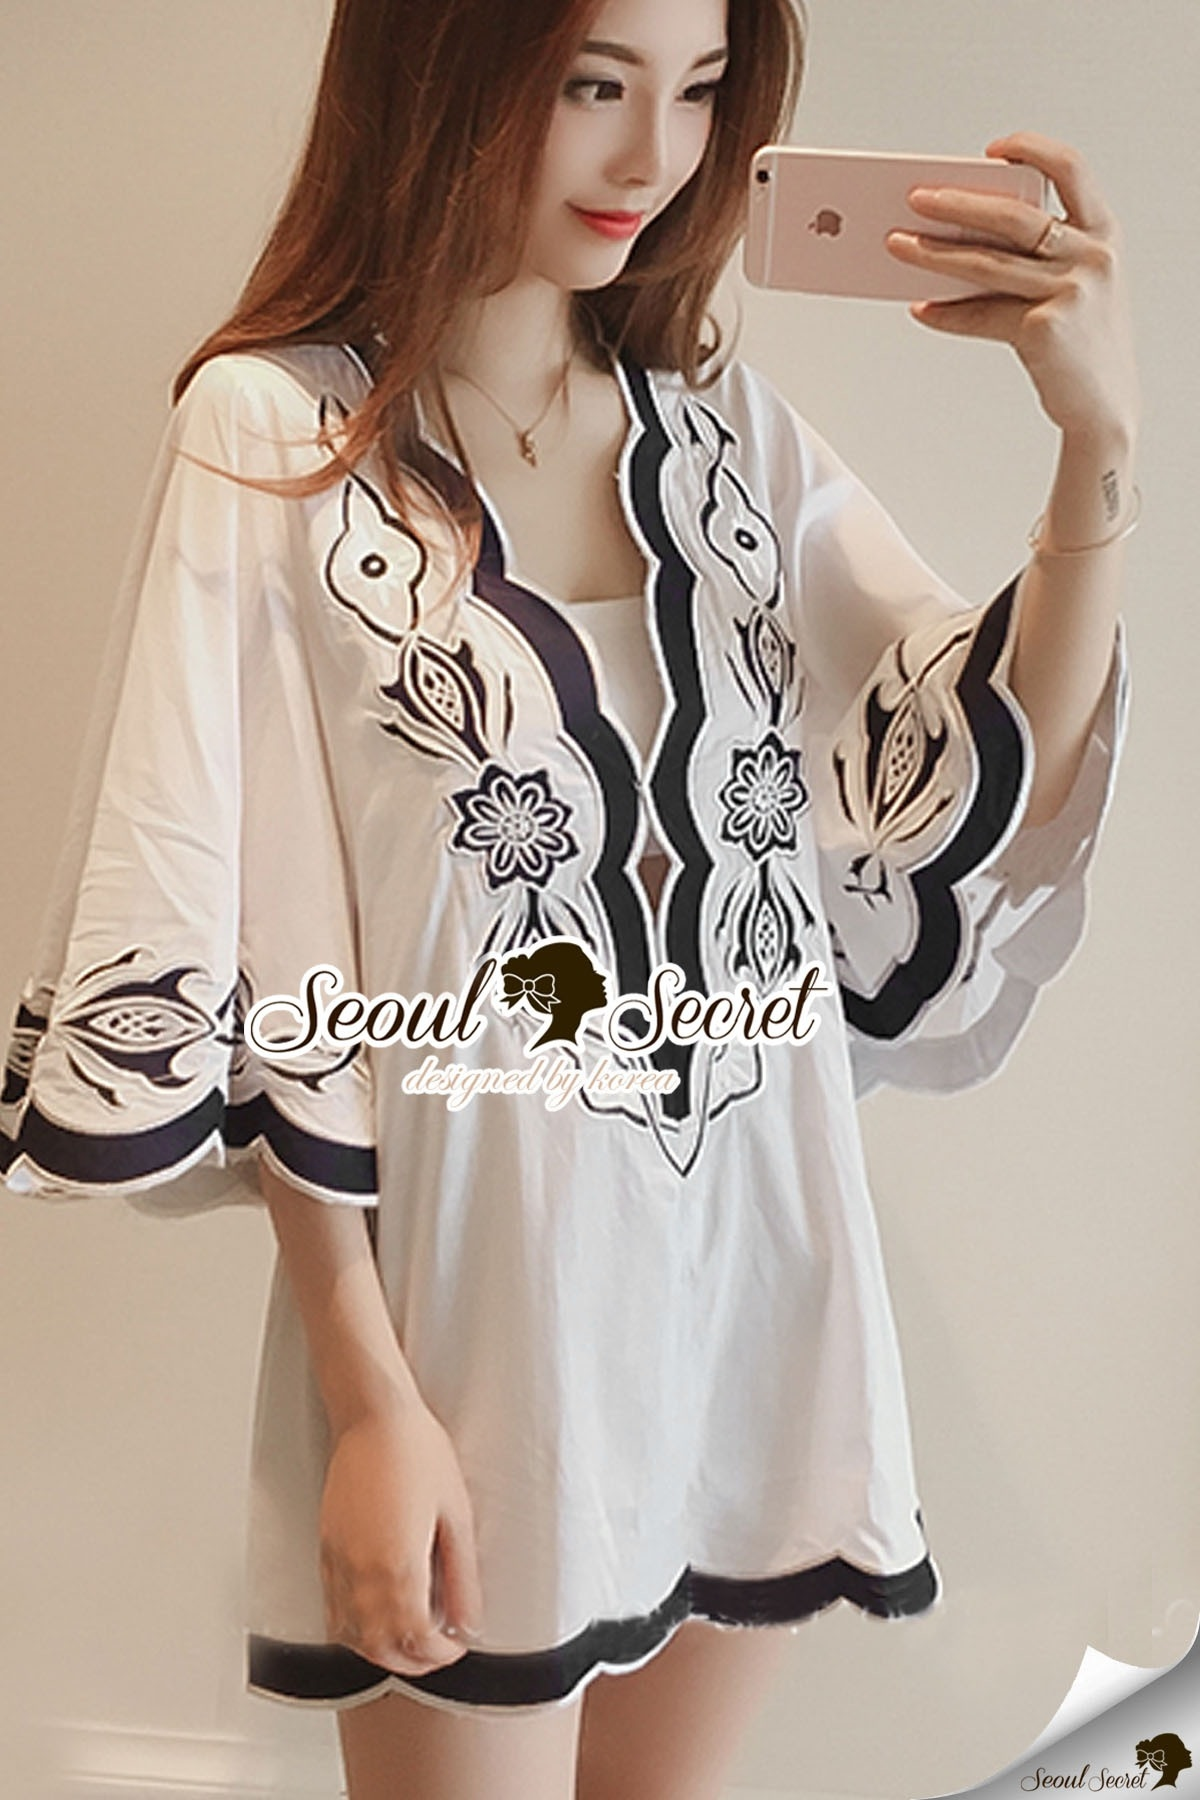 Seoul Secret Say's... Curly Stick Girly Bell Sleeves LOng Blouse